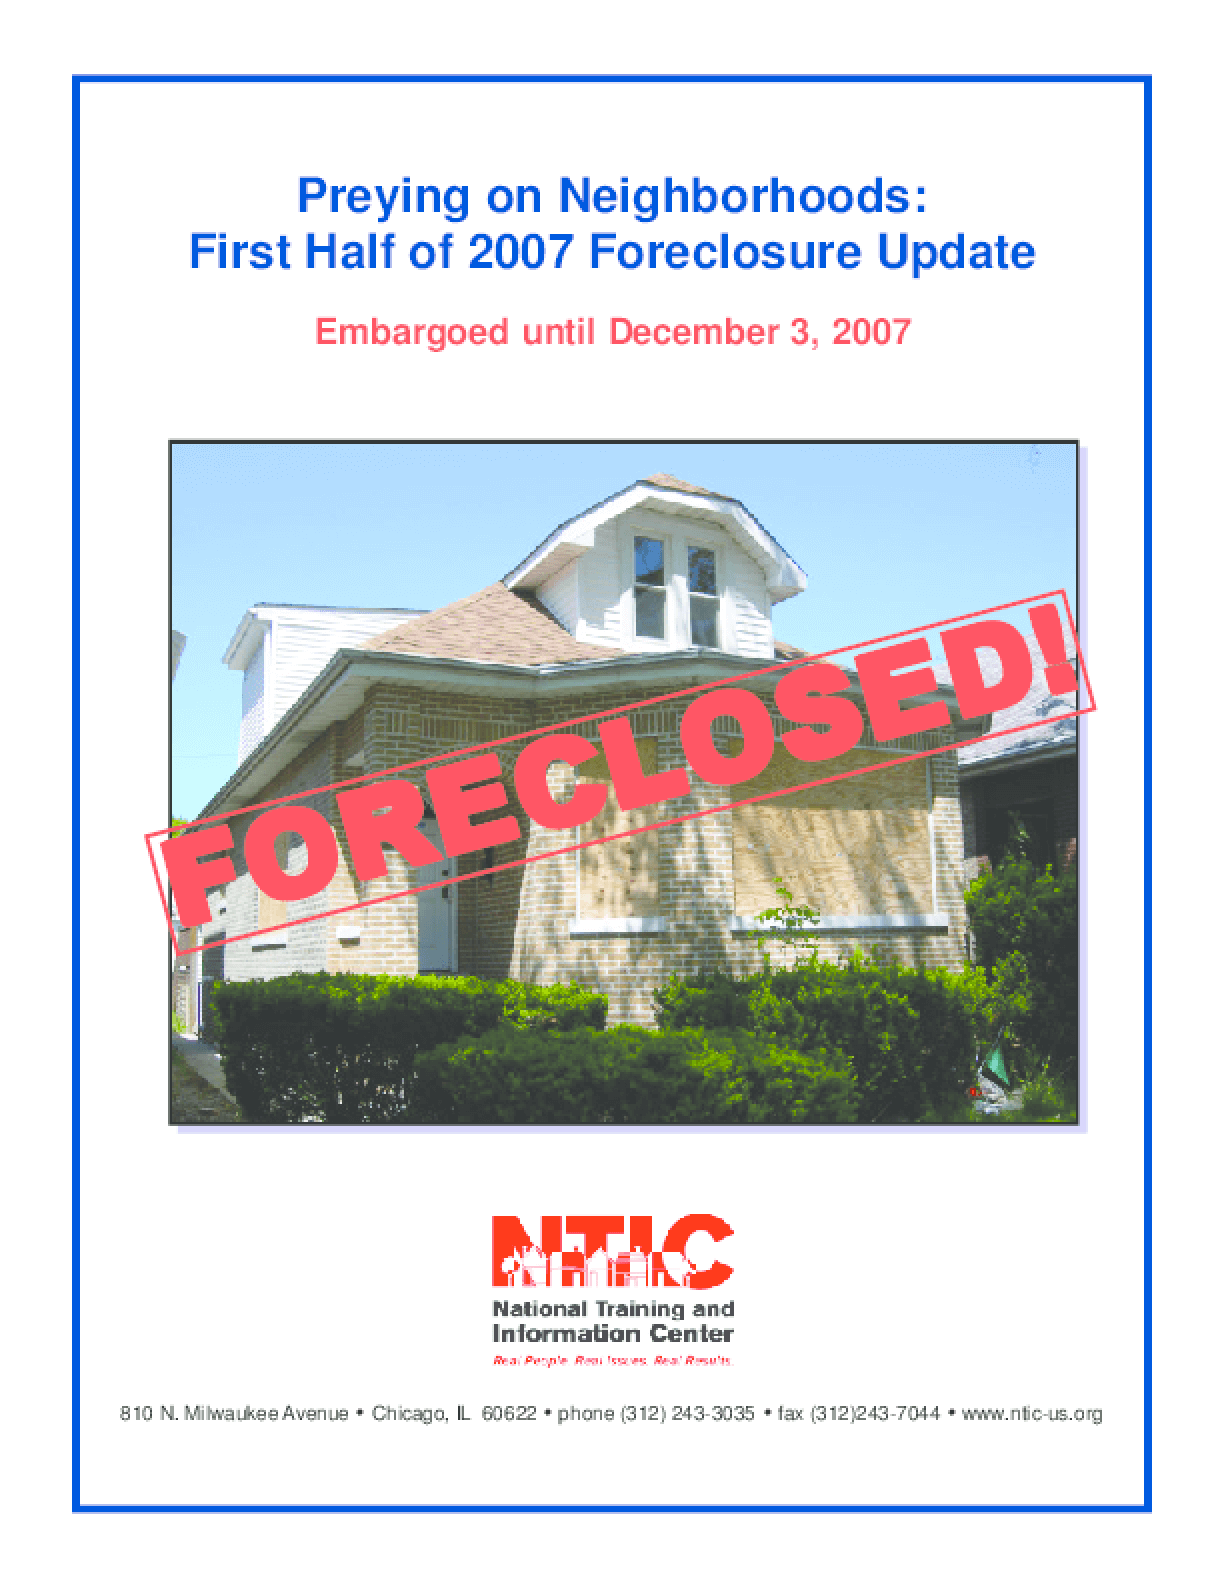 Preying on Neighborhoods: First Half of 2007 Foreclosure Update